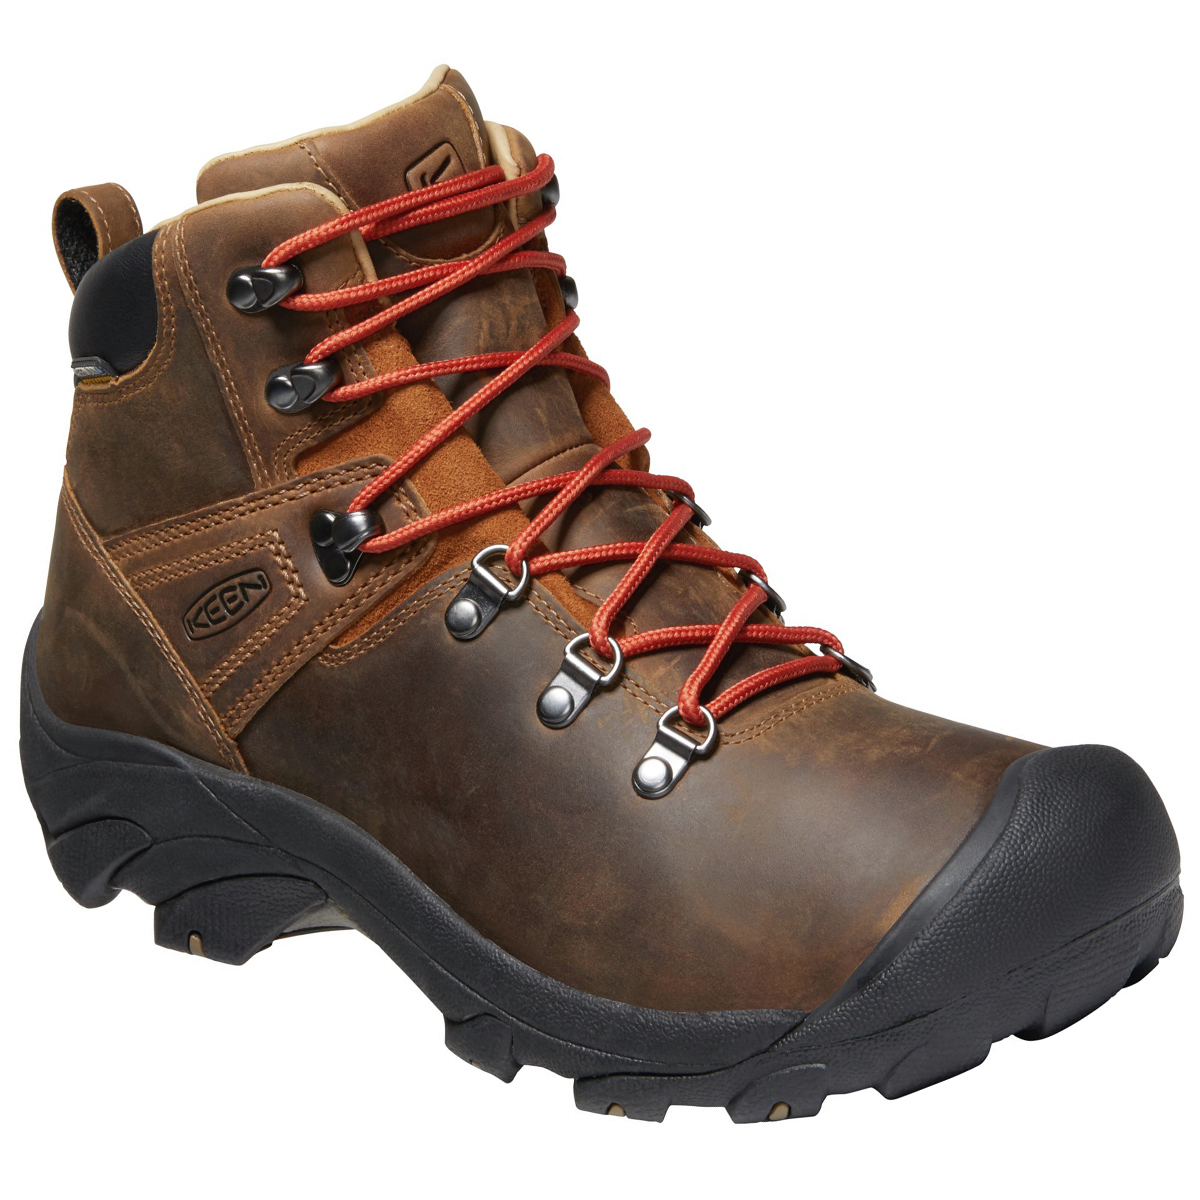 Keen Men's Pyrenees Hiking Boot - Brown, 9